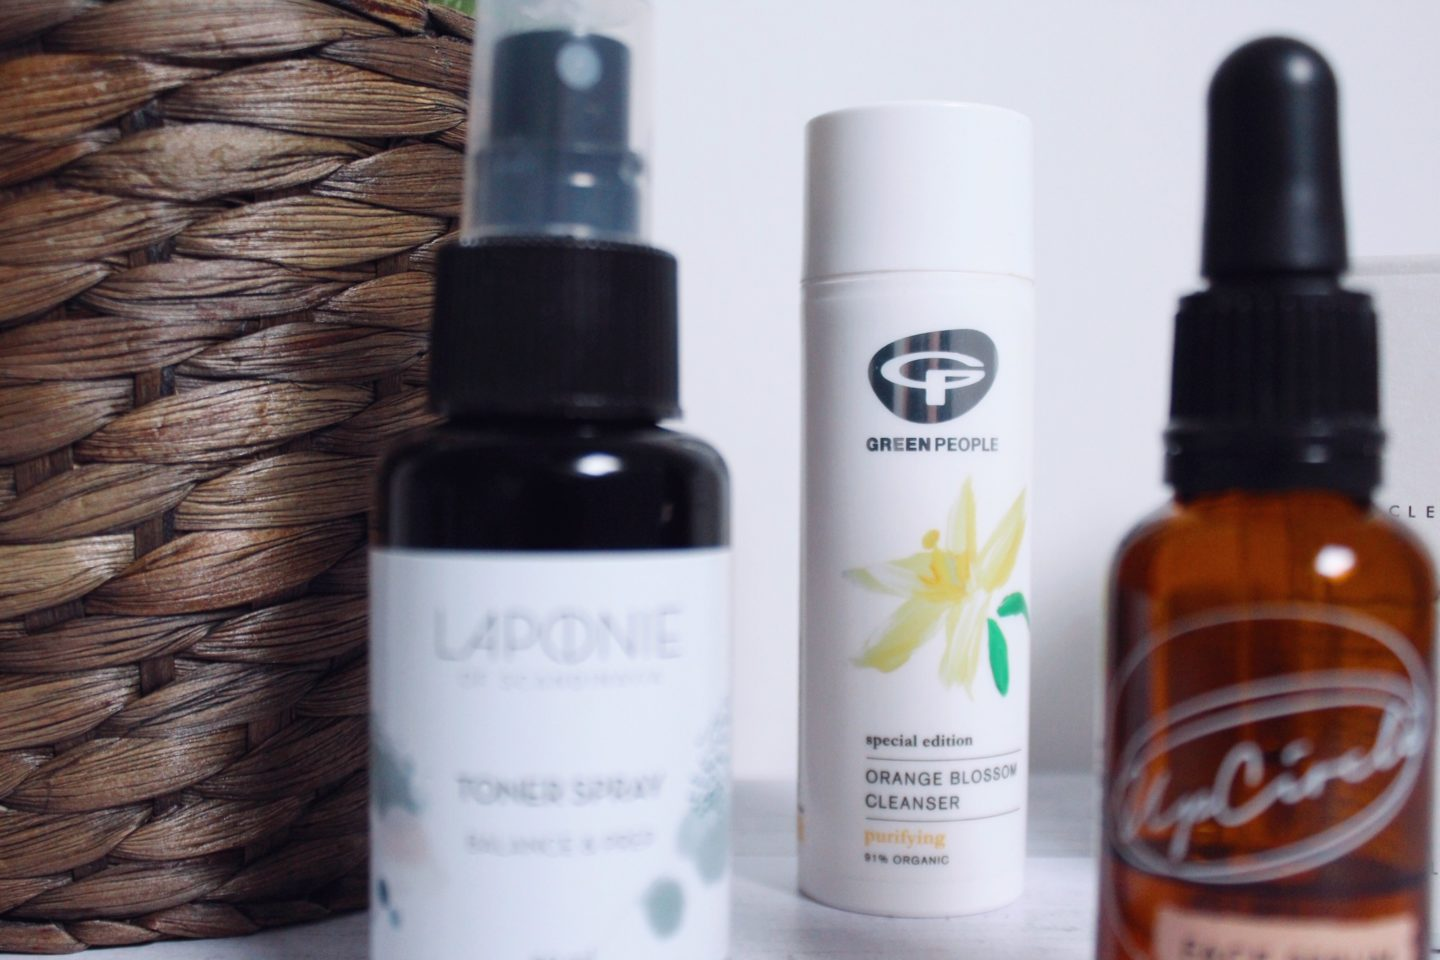 3 things to look out for in sustainable skincare